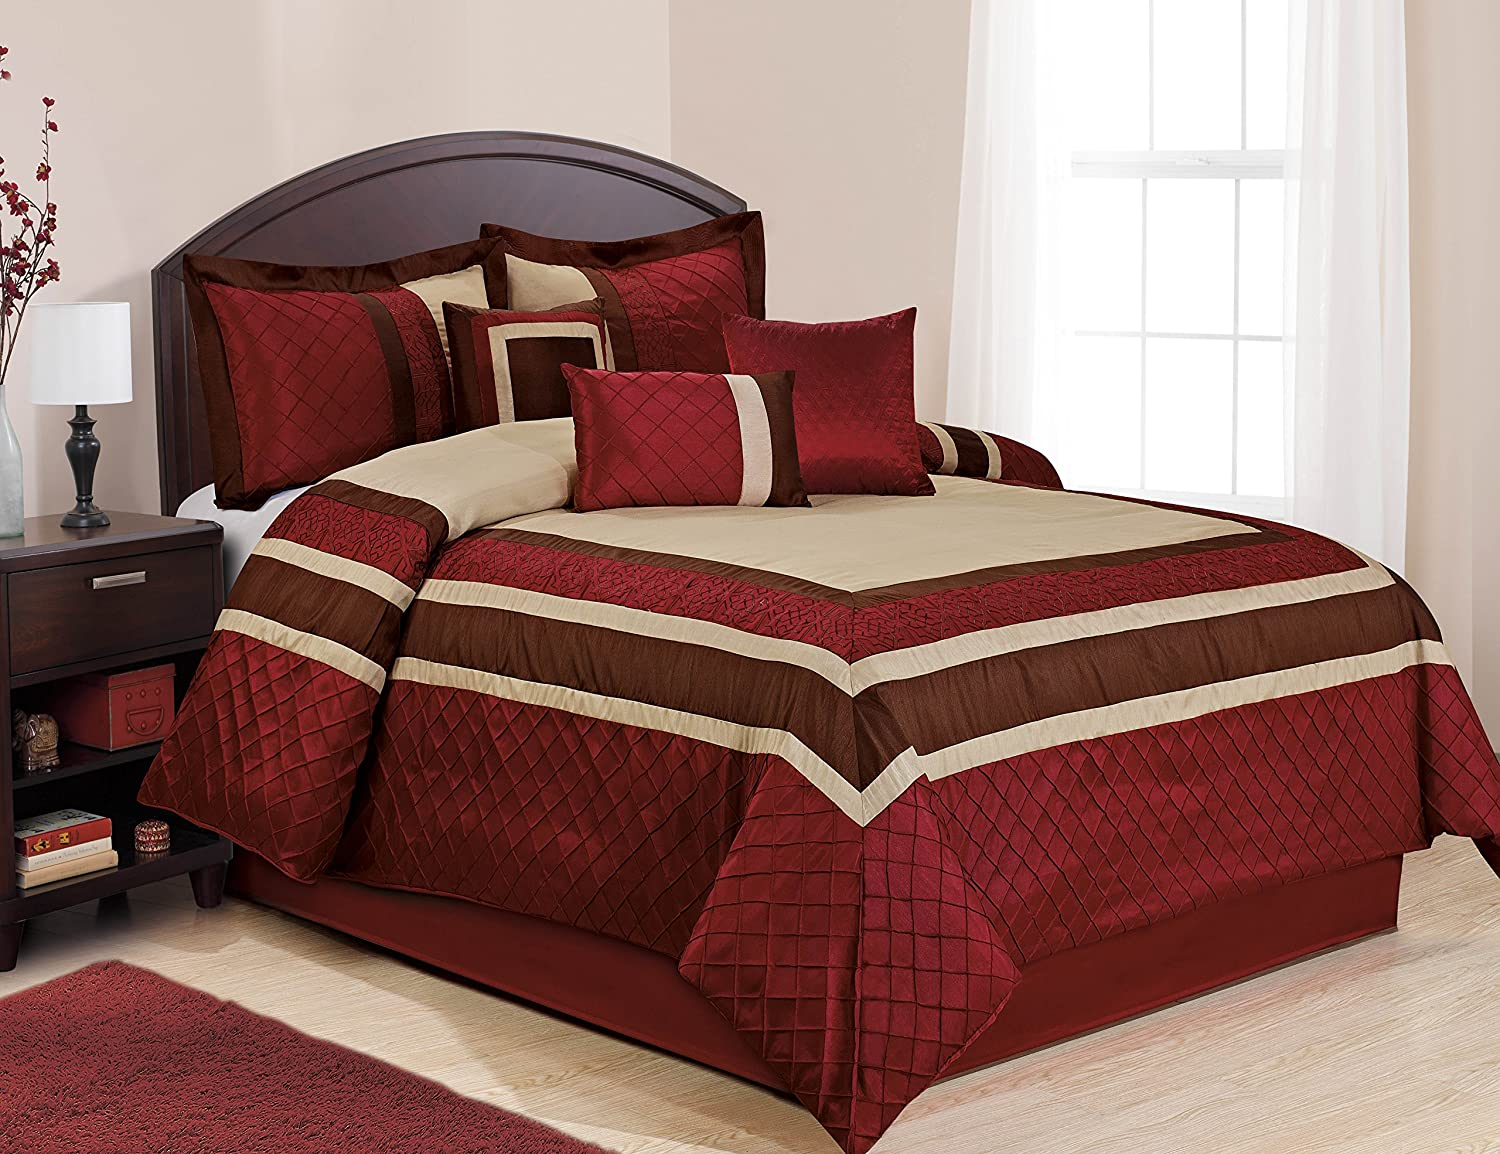 perfect grey for red stripped looking comforter two shams set and combination in addition standard good base coolest bedroom black gray